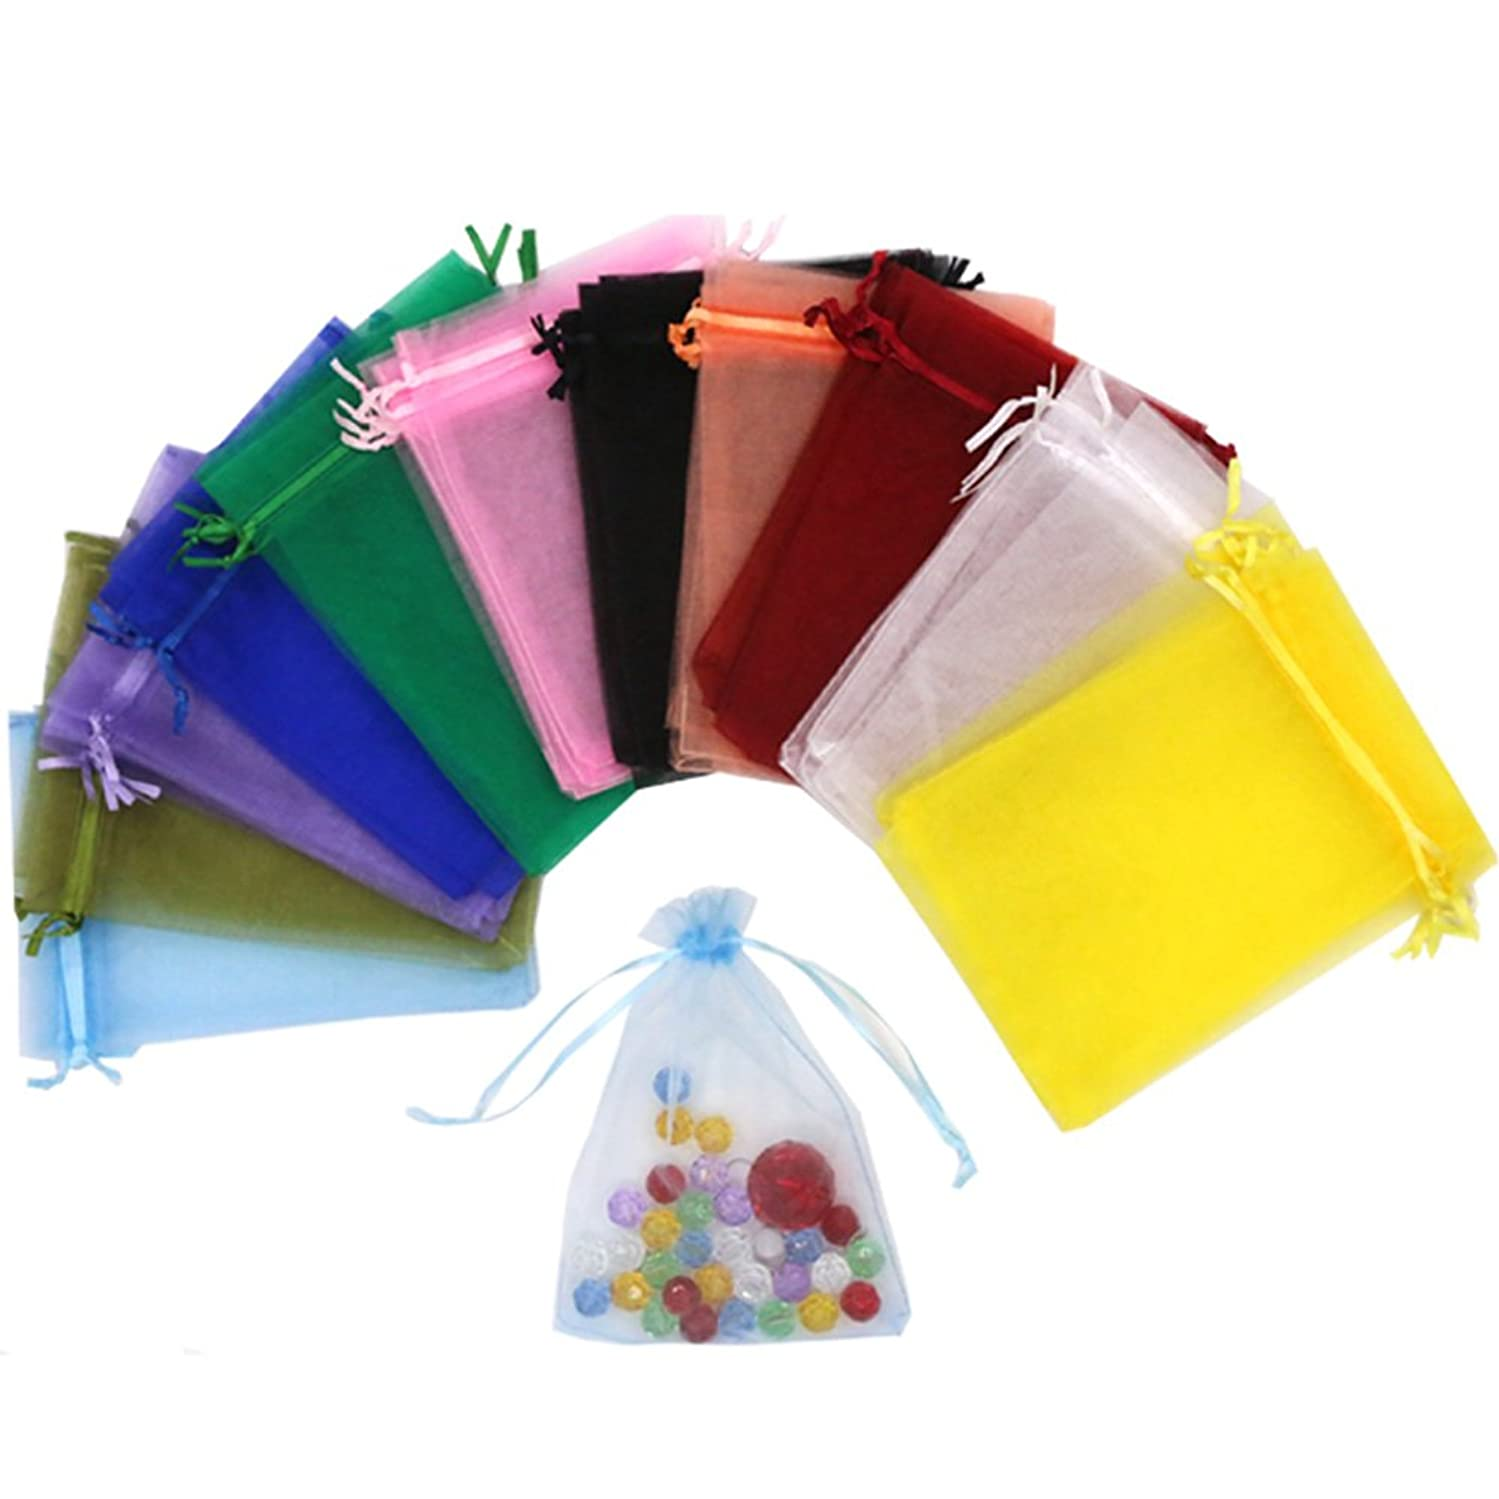 SumDirect 110Pcs 5x7inches Mixed Color Sheer Drawstring Organza Jewelry Pouches Wedding Party Christmas Favor Gift Bags (5x7inches, Mixed Color)